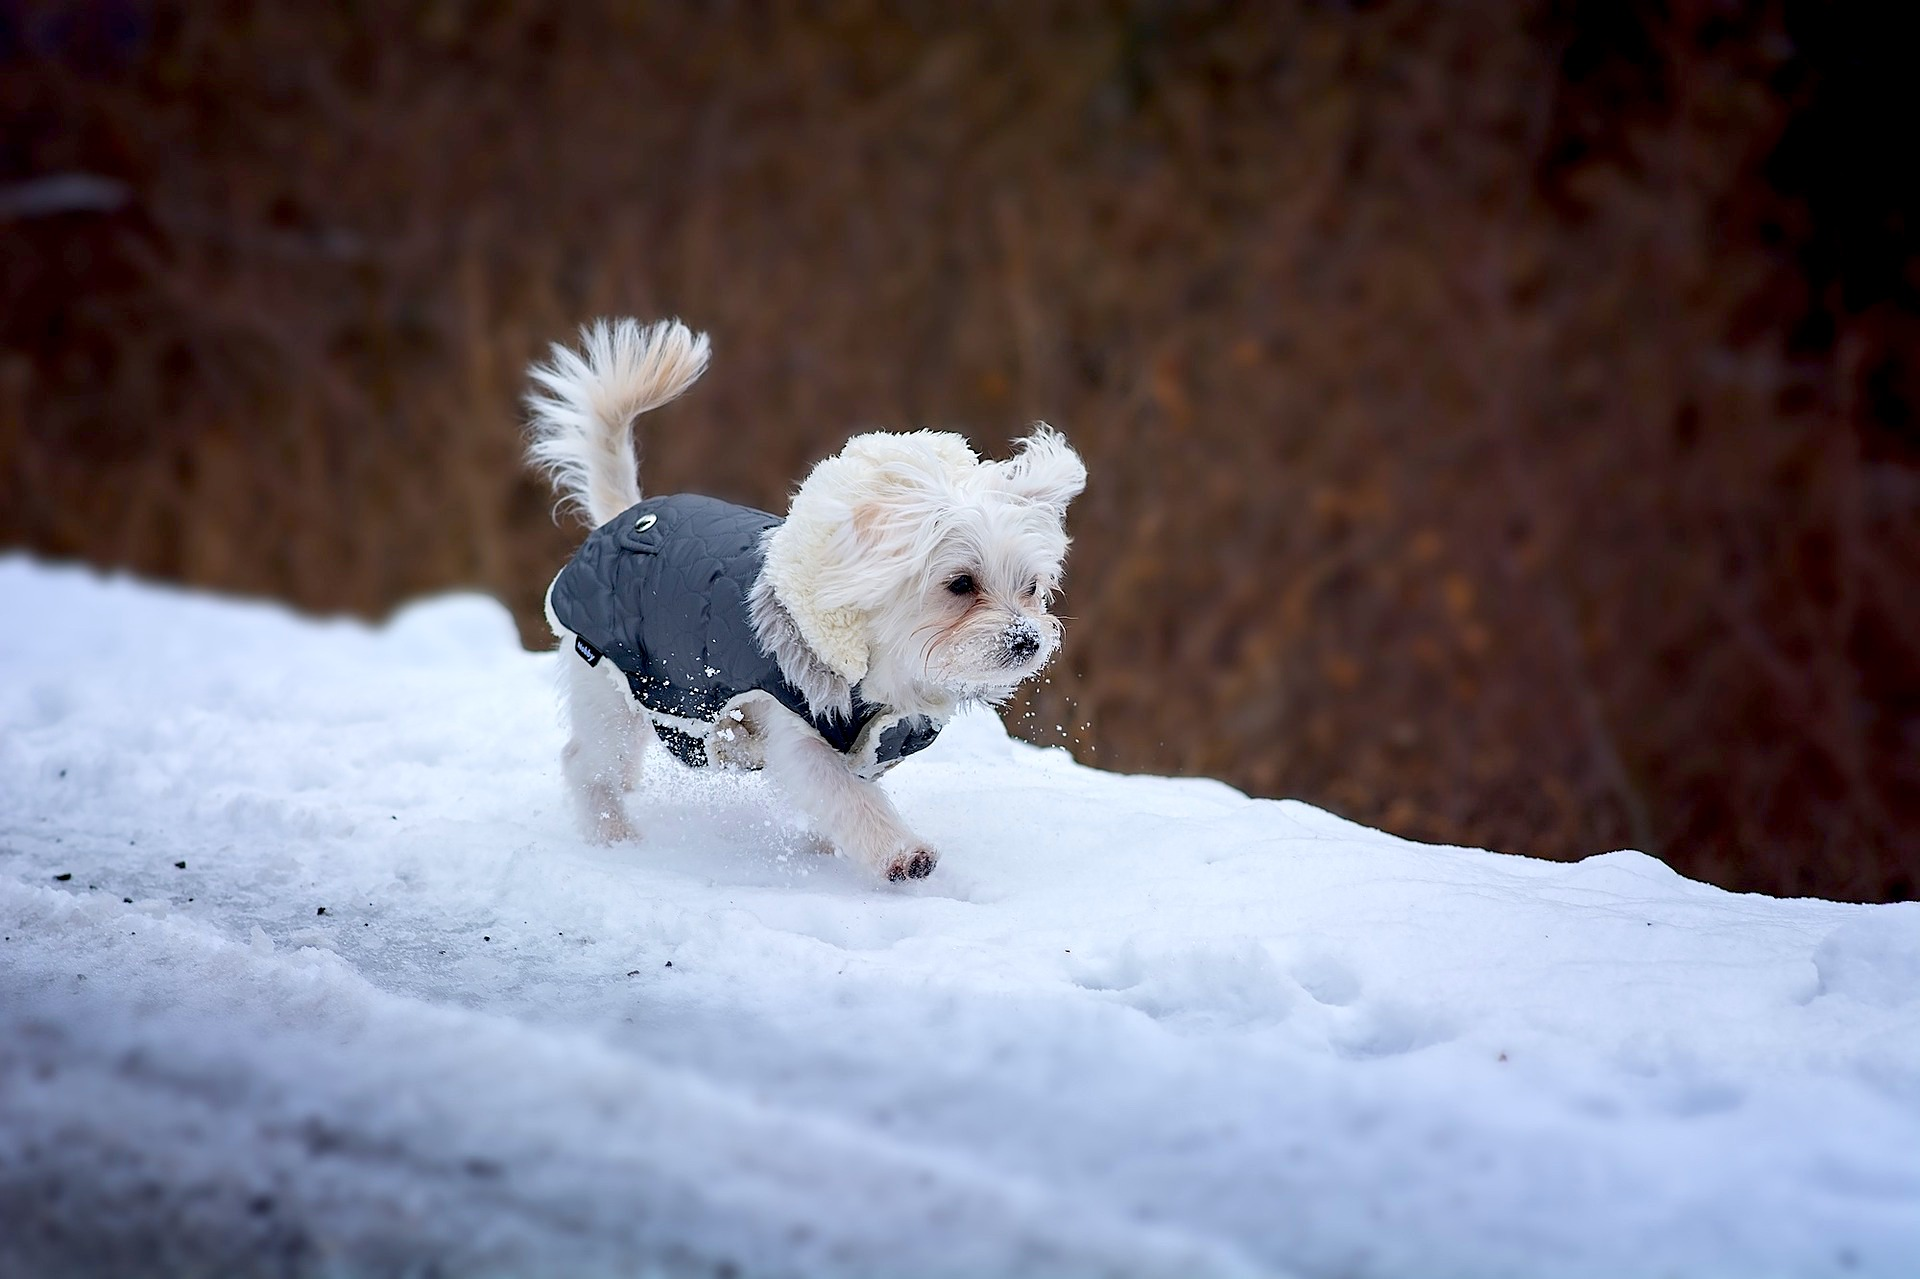 Dapper little gent in the snow